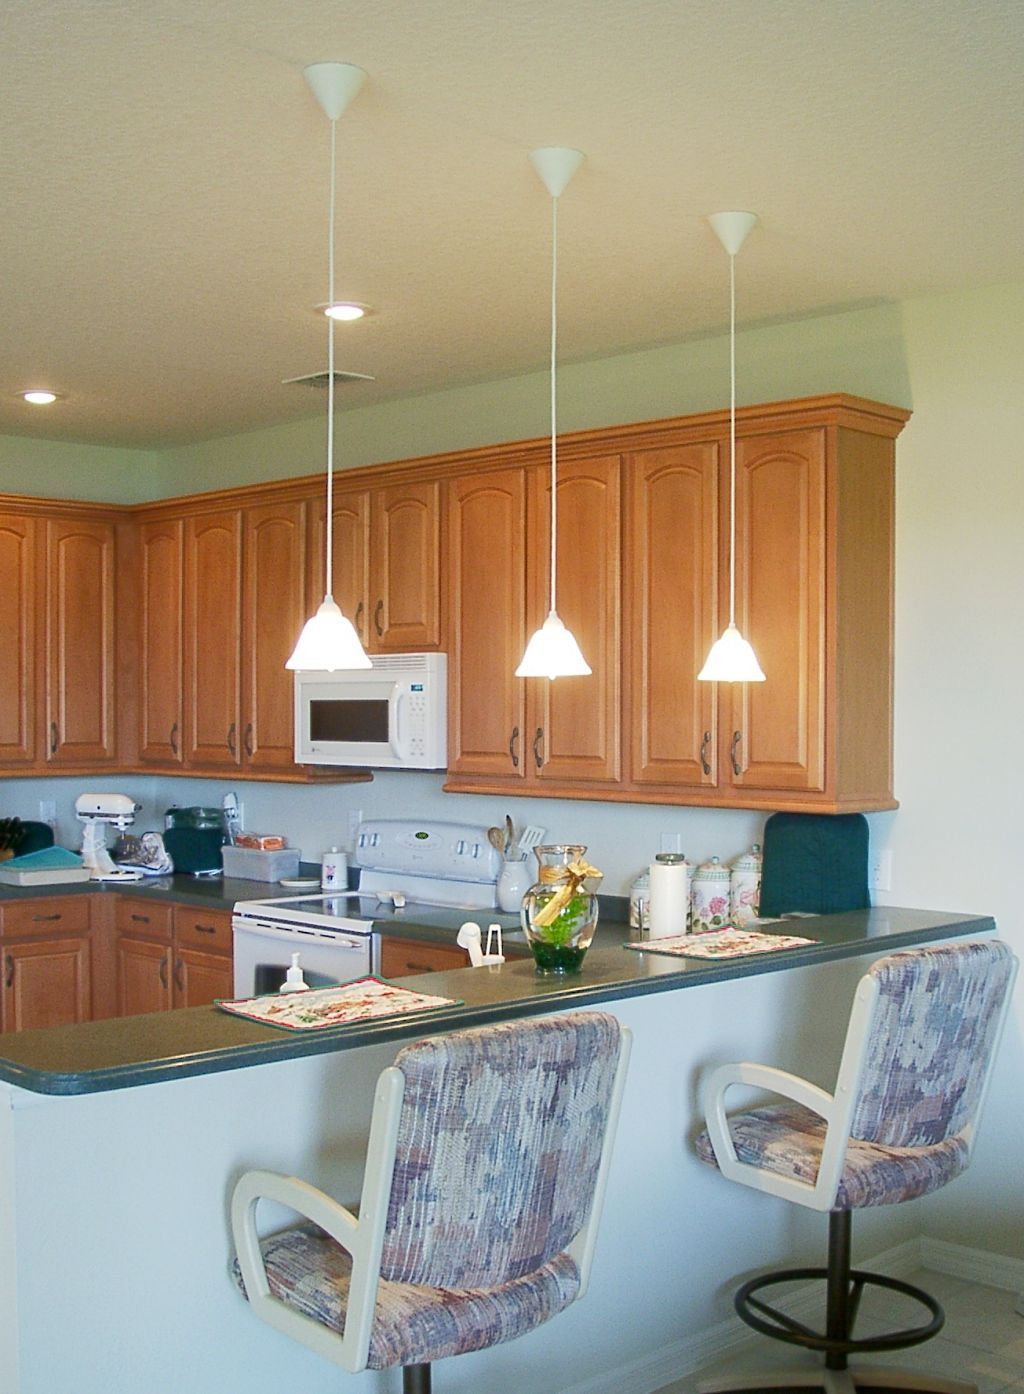 Low hanging mini pendant lights over kitchen island for an for Kitchen island lighting pendants